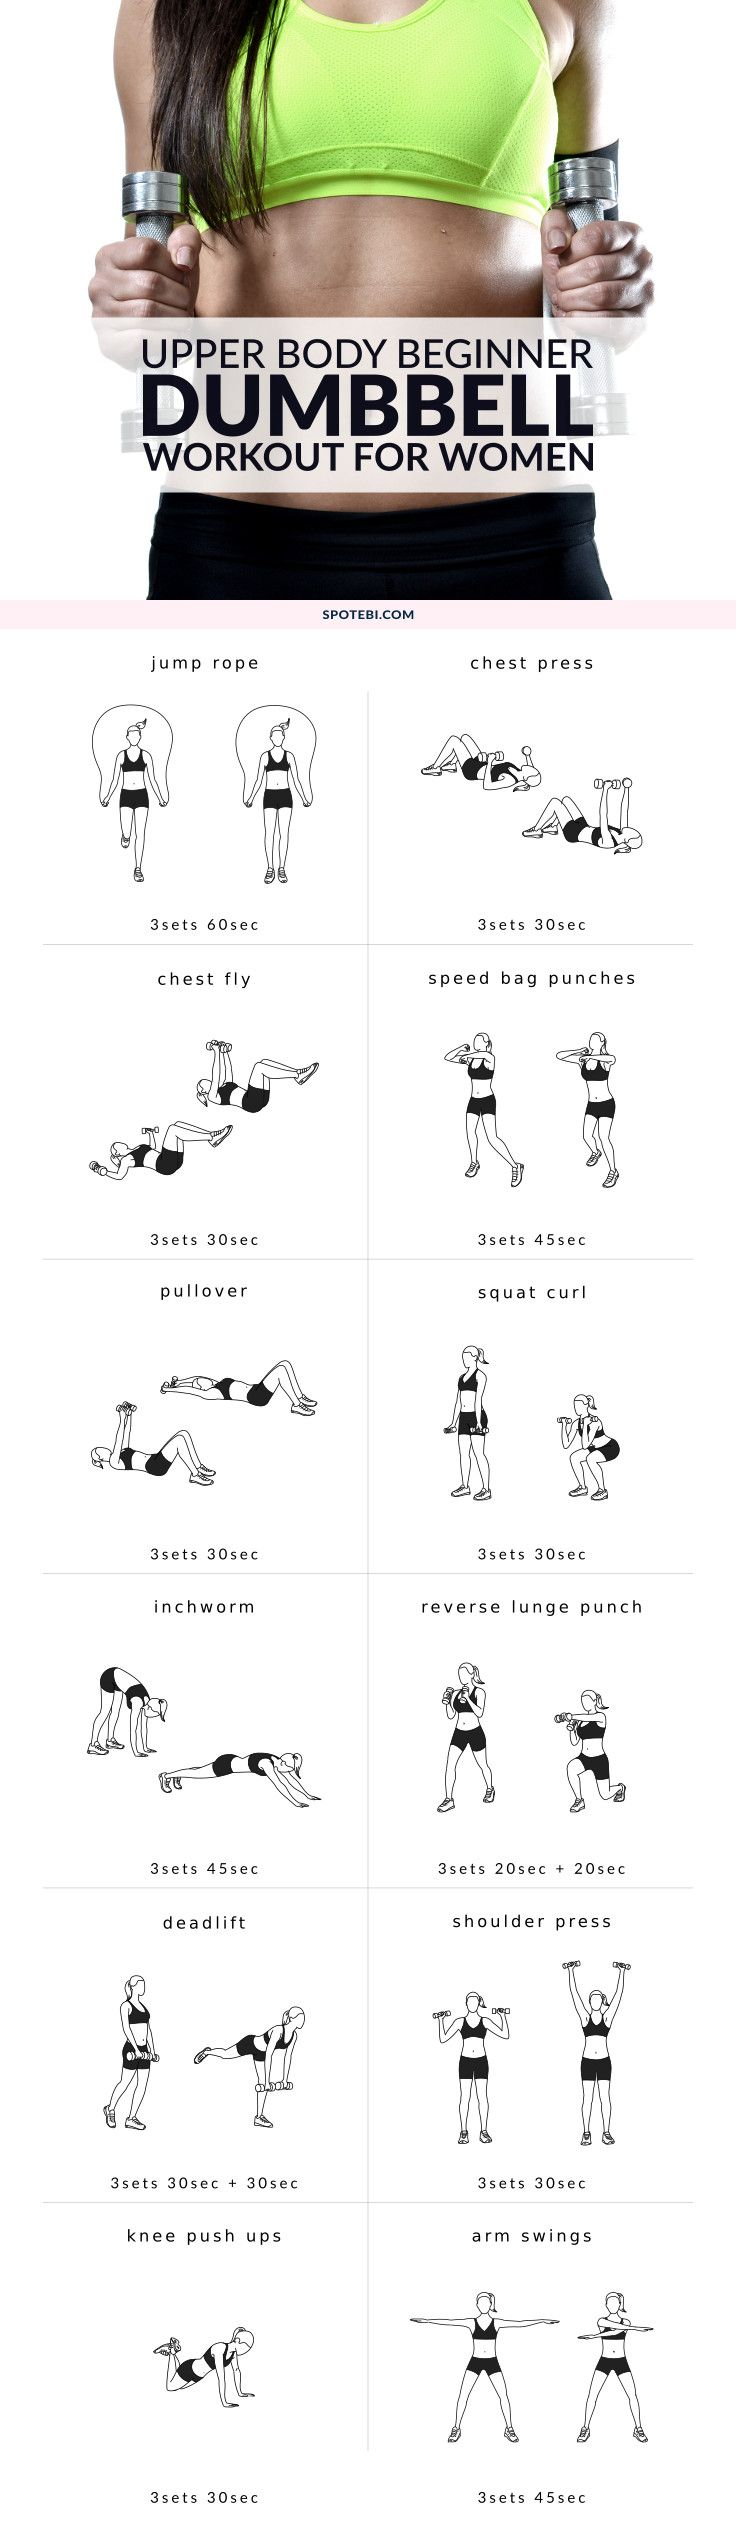 Strengthen your back and lift your chest with this upper body beginner workout for women. A set of 12 exercises to help you sculpt your body and improve your posture. http://www.spotebi.com/workout-routines/upper-body-beginner-workout-women/